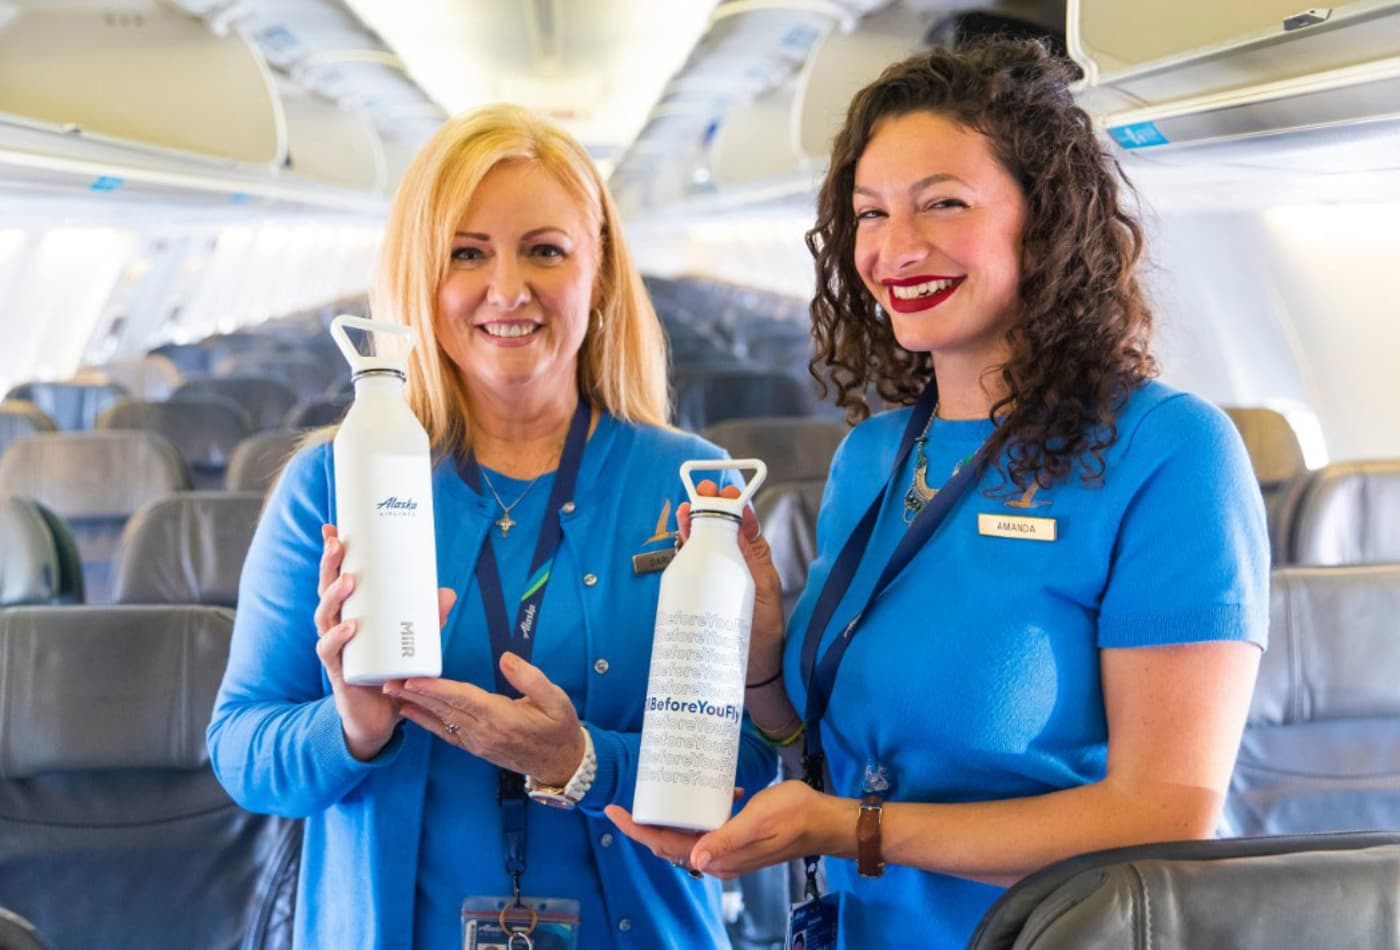 Airports and airlines want travelers to ditch their plastic water bottles